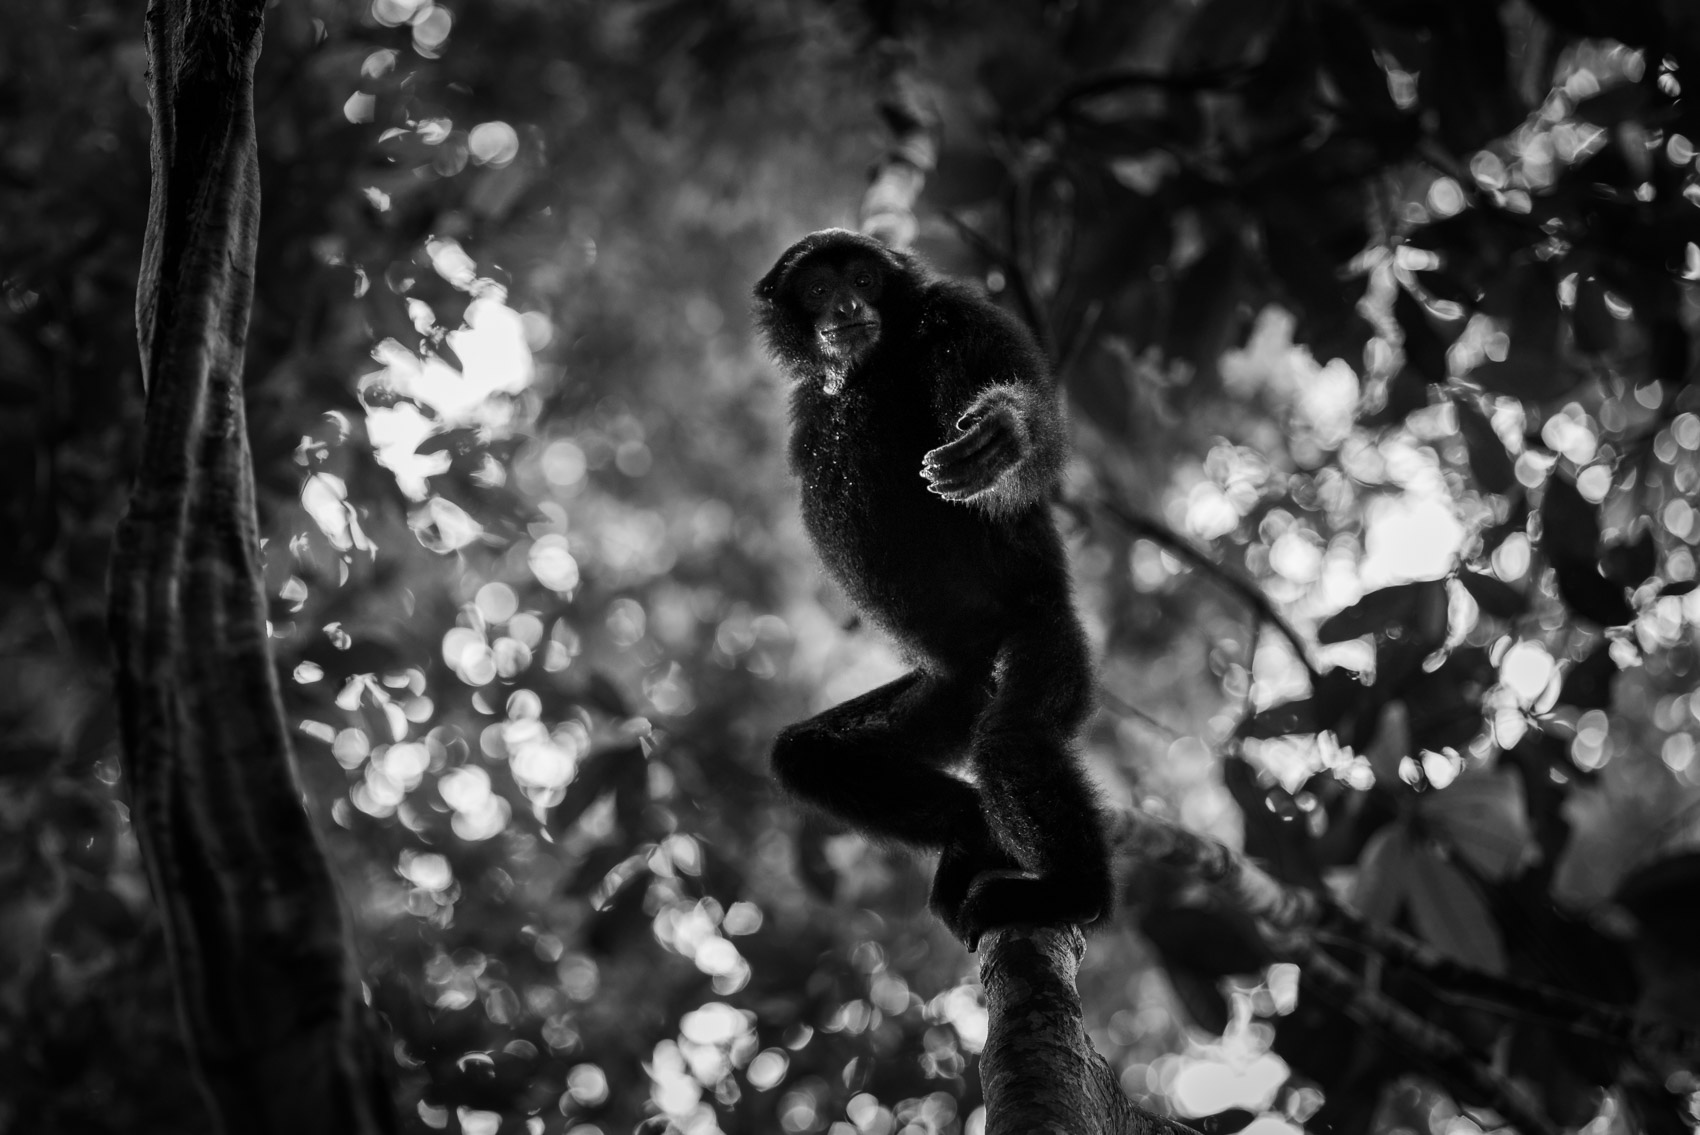 Siamang hanging from a branch with hand out in a rainforest